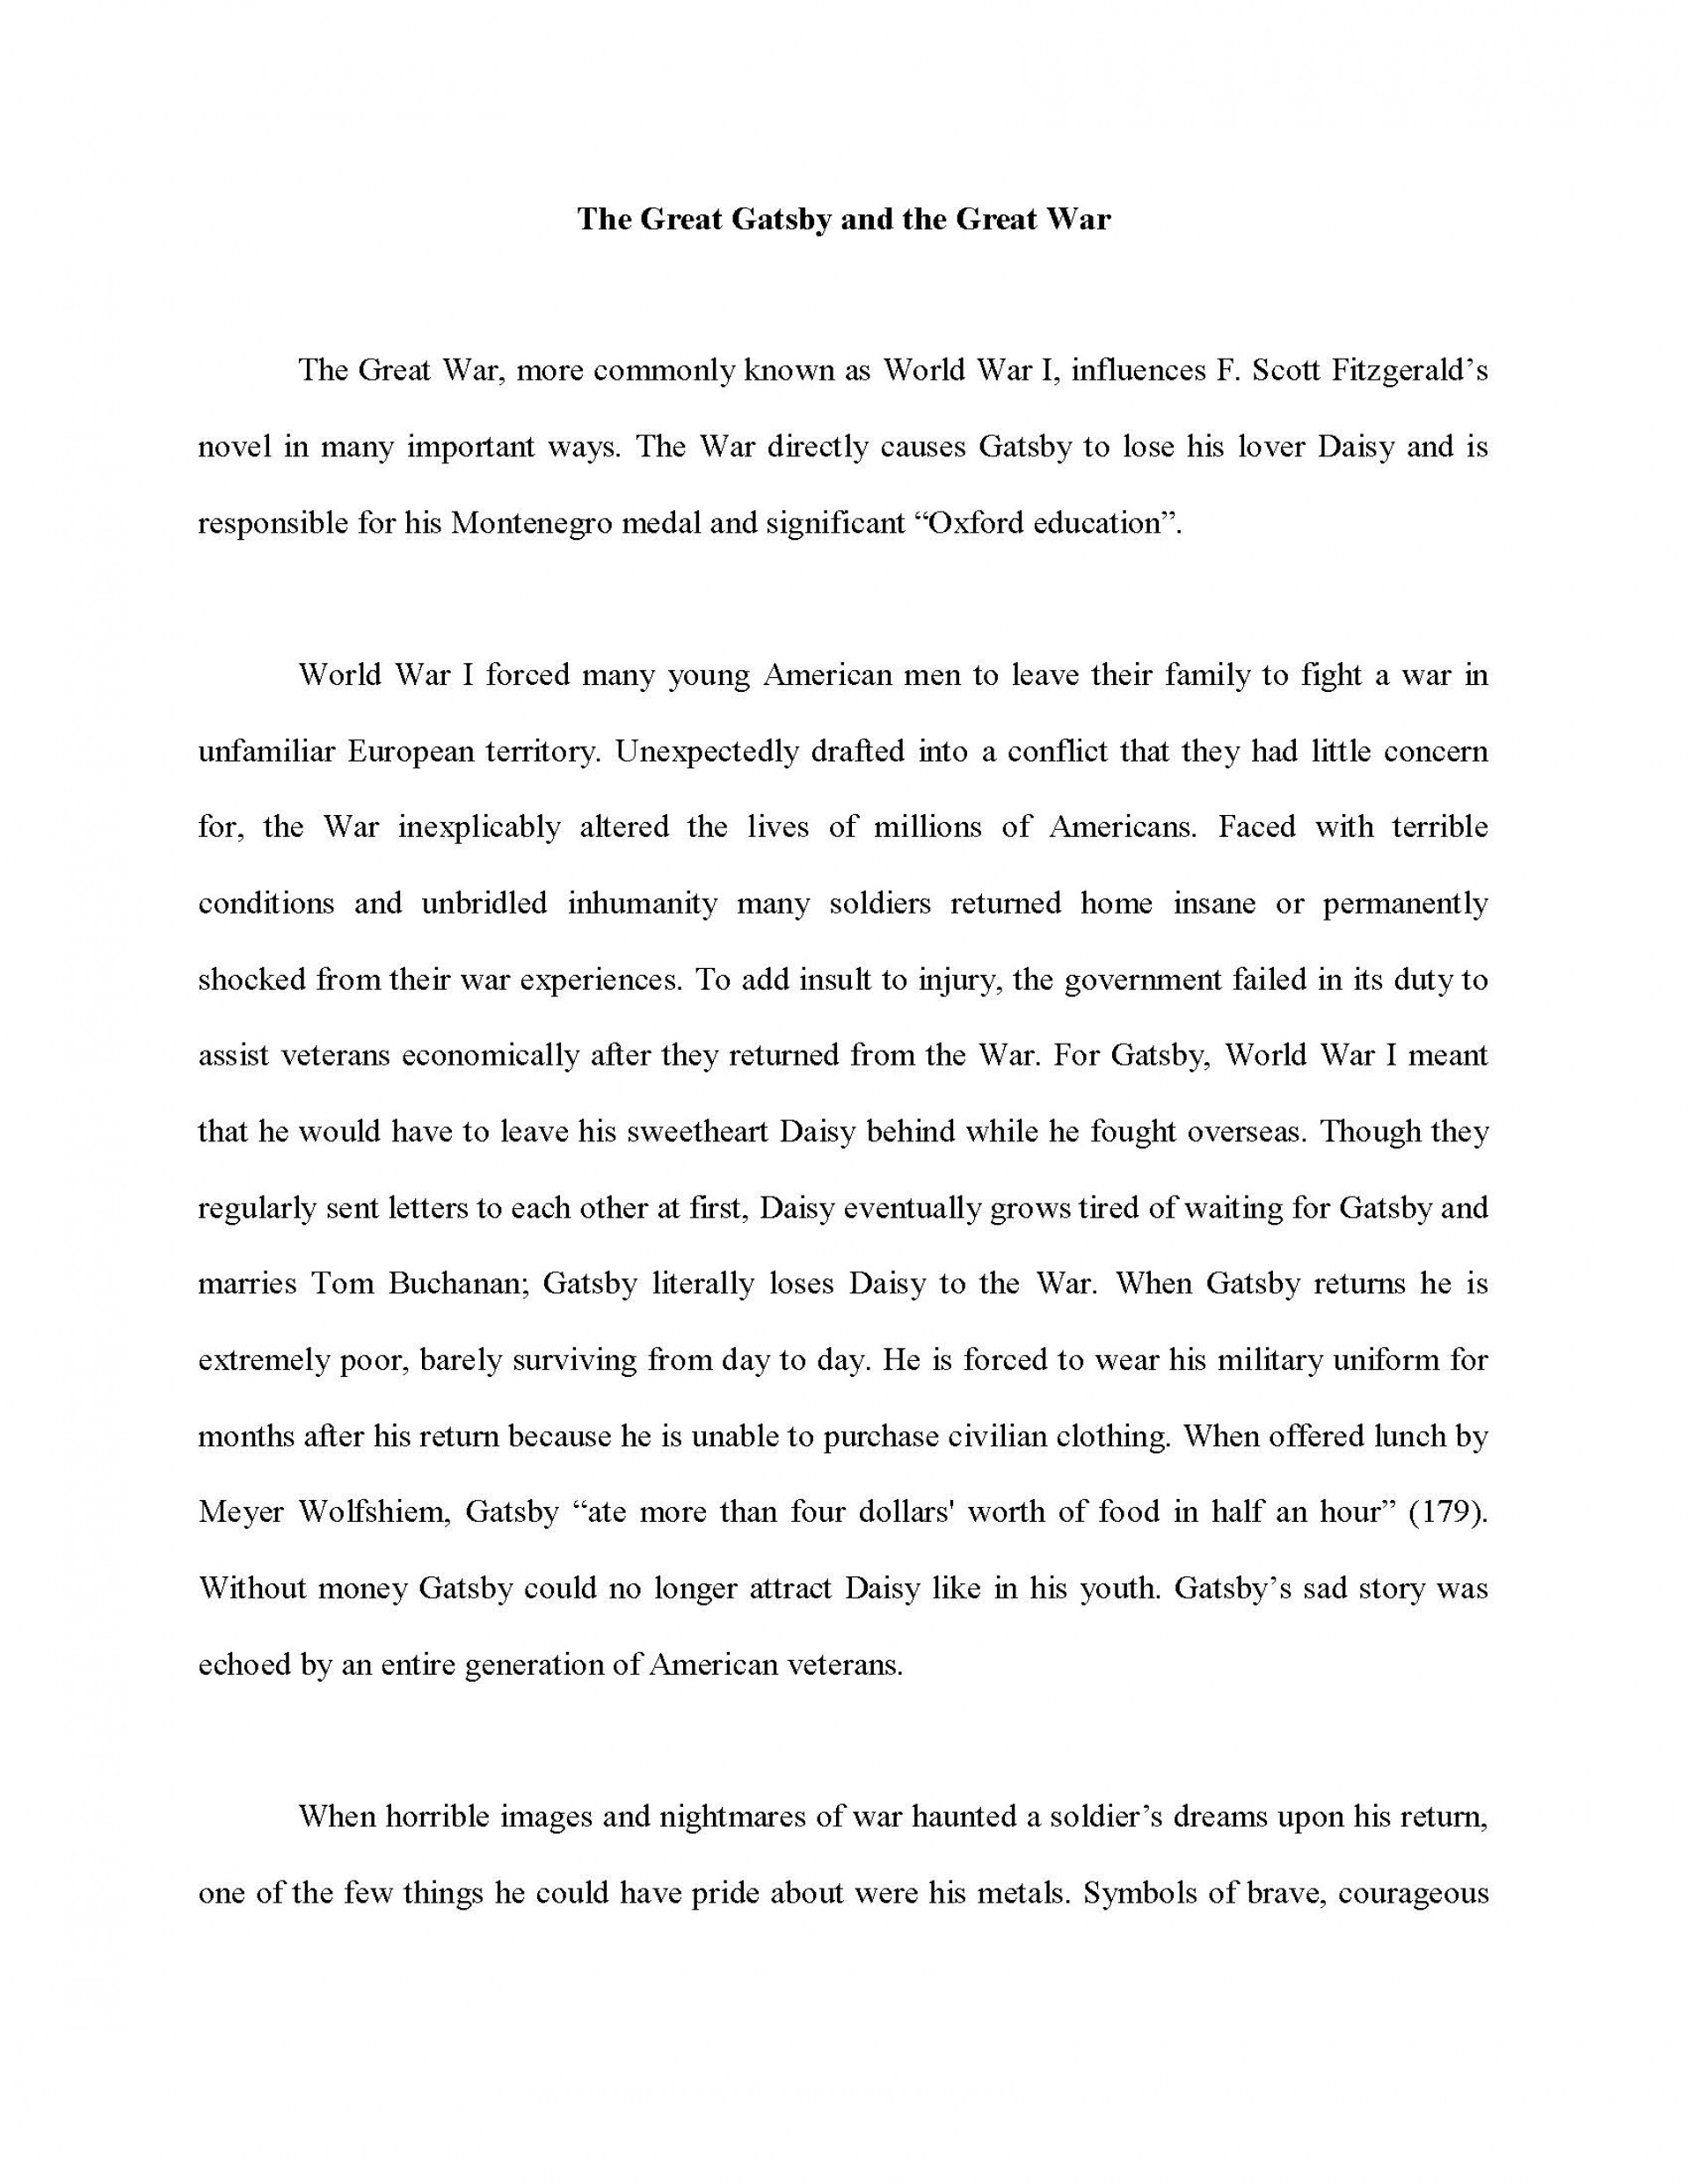 007 Essay Example Informative Sample Unusual Thesis Template How To Write An Statement 1920